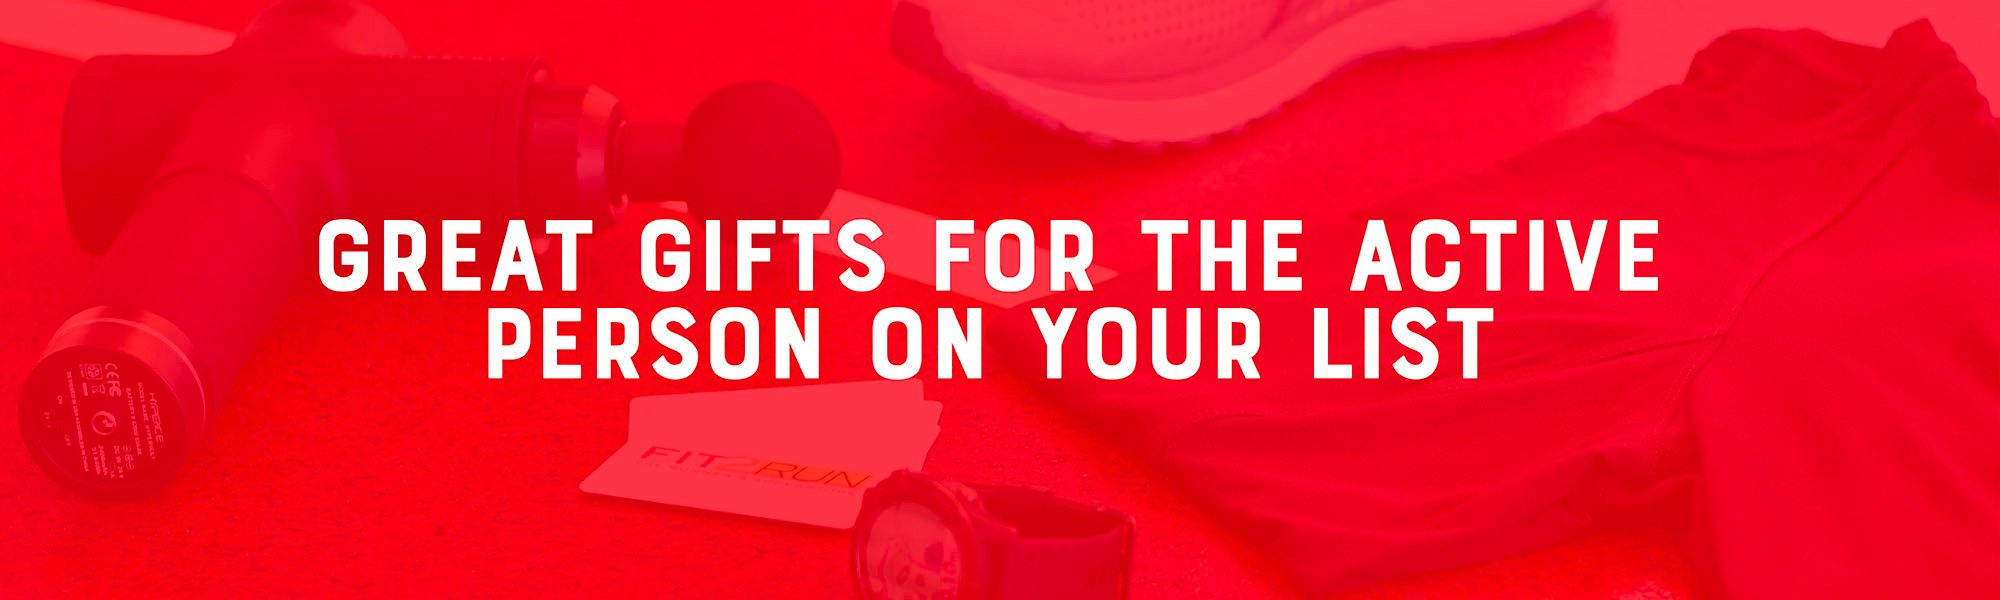 This Season's Top Gifts for the Active Person on Your List